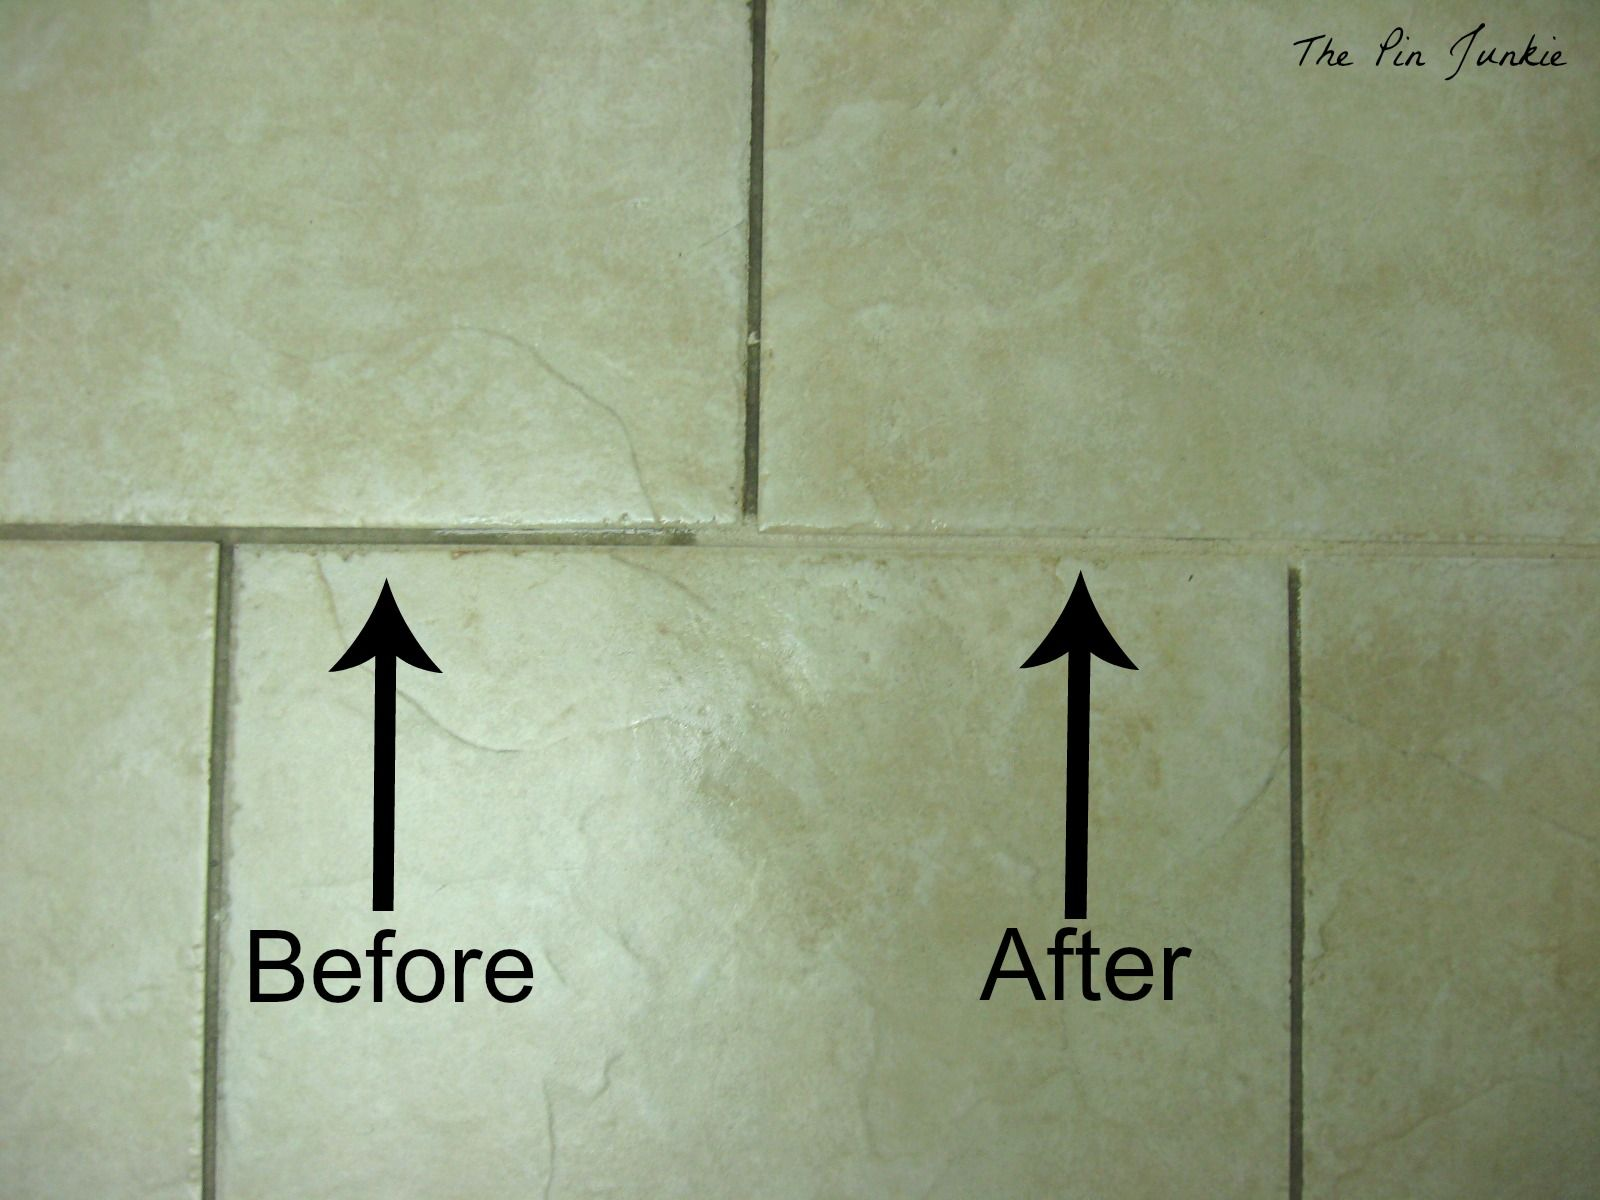 How to clean tile grout tile grout grout and tile grout cleaning how to clean tile grout dailygadgetfo Image collections